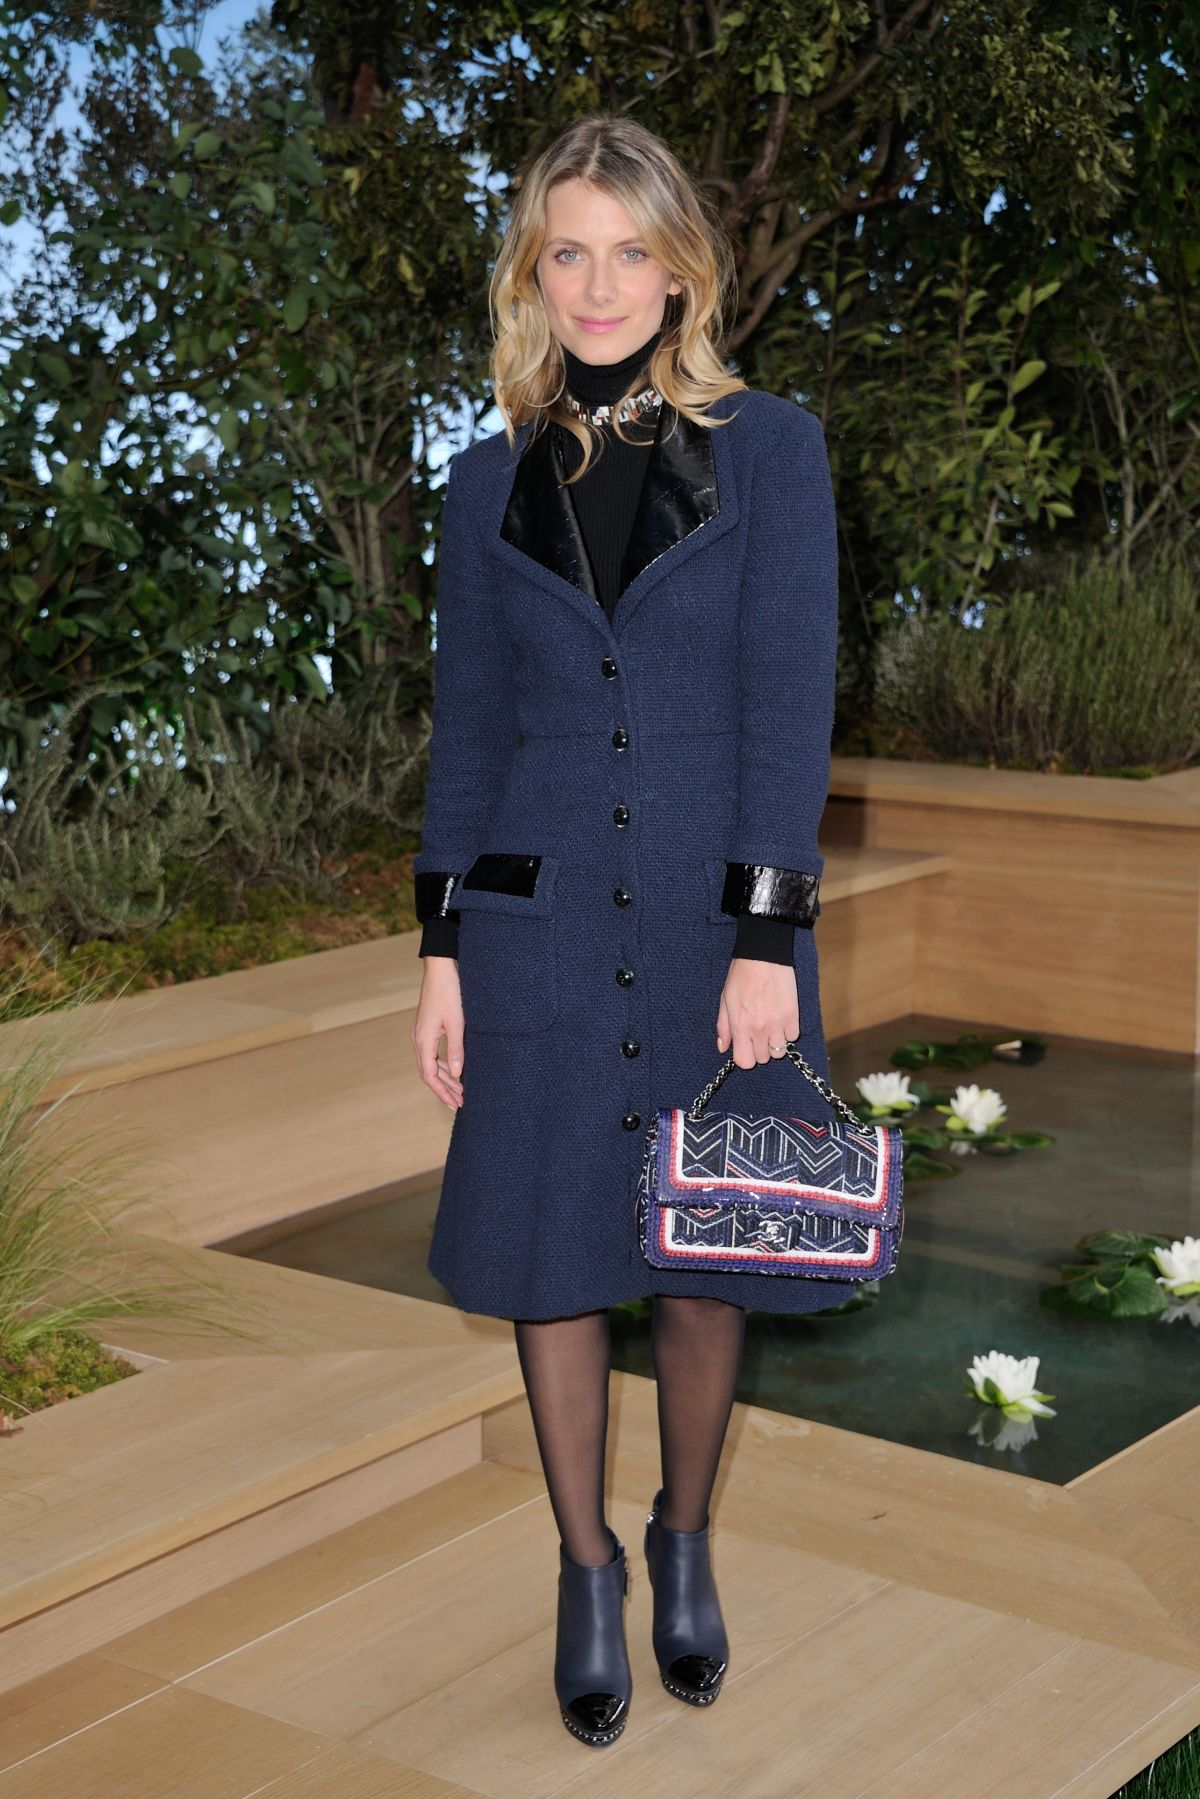 MELANIE LAURENT at Chanel Fashion Show in Paris 01/26/2016